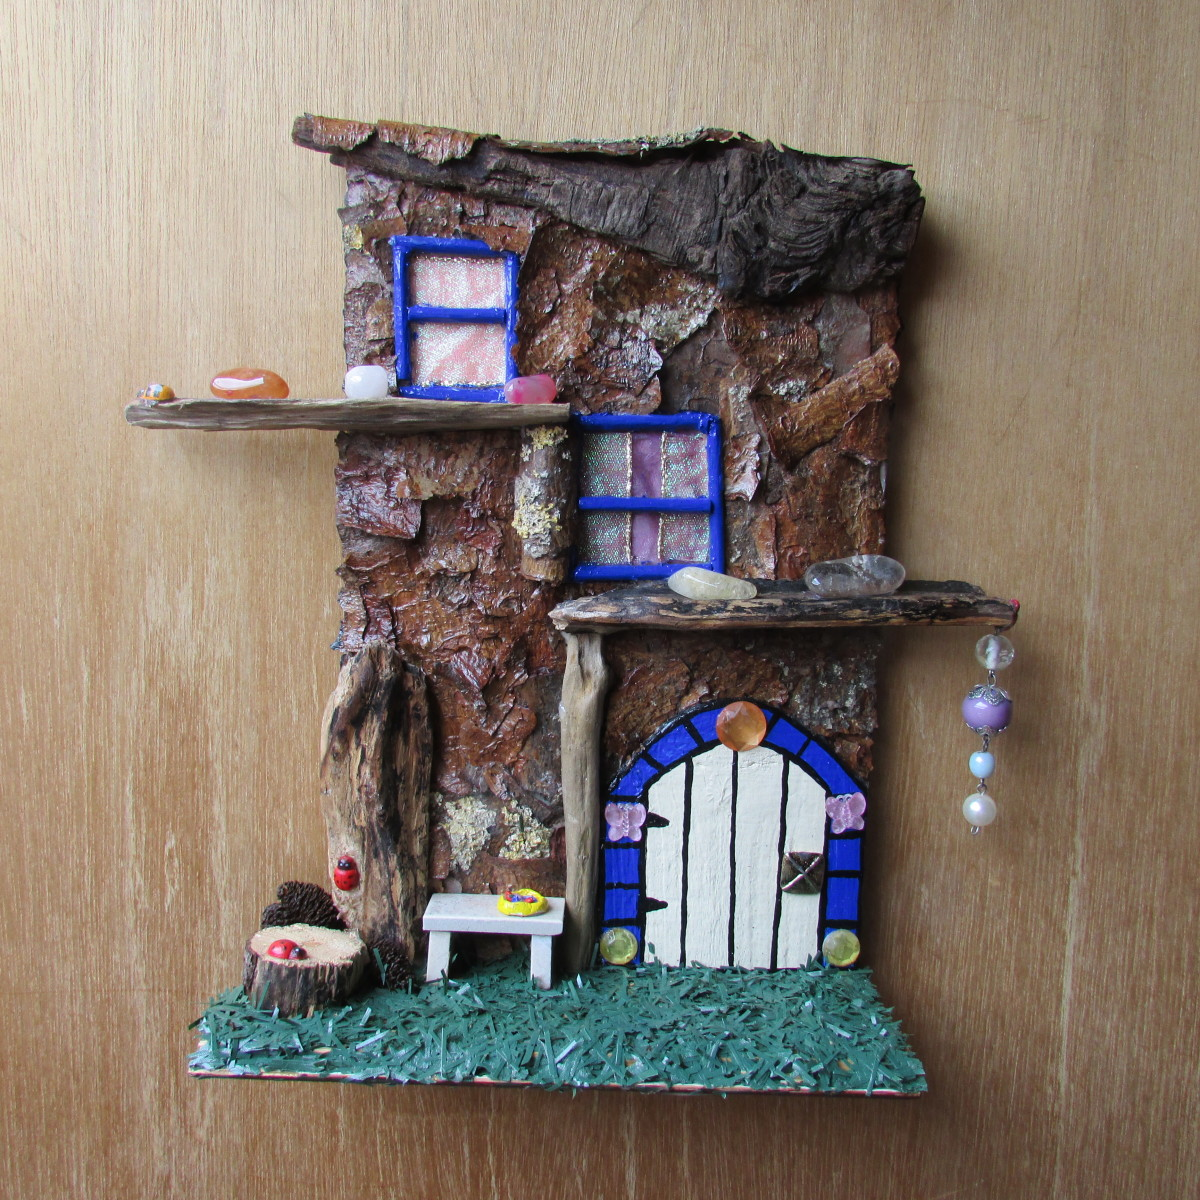 How to make doors and windows for a fairy tree house